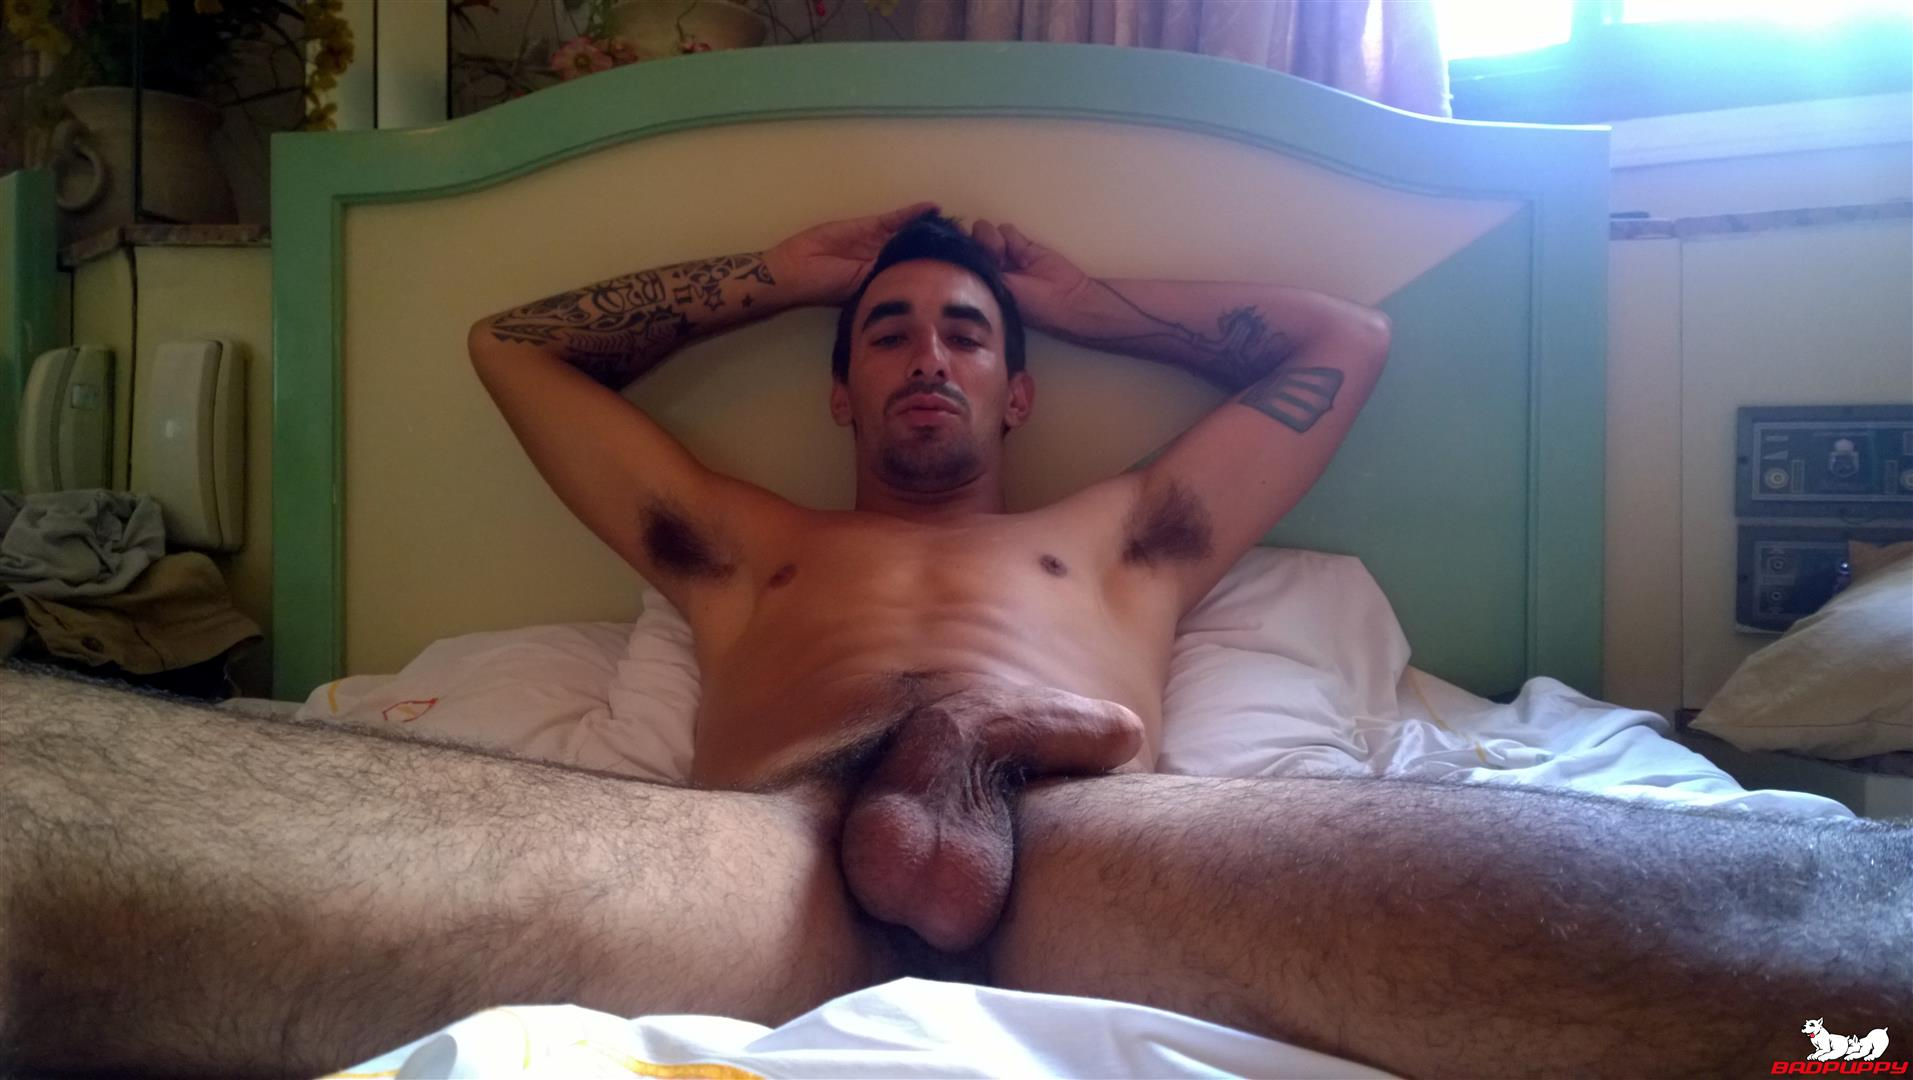 Badpuppy Fabian Flores Argentinian with a Big Uncut Cock 04 Argentinian Hunk With A Big Uncut Cock Auditions For Gay Porn